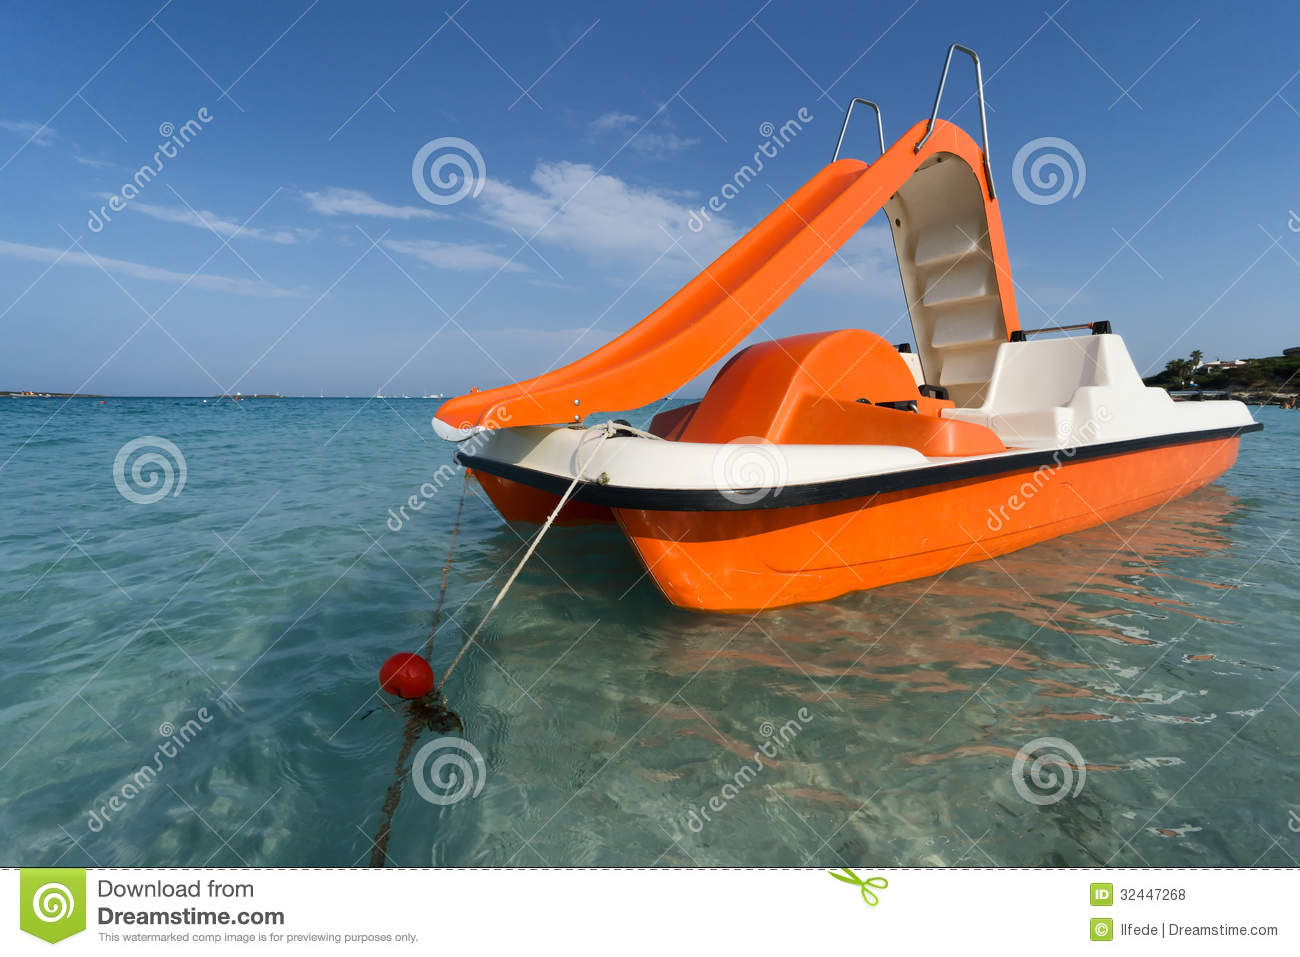 Shopping mall digital advertisements together with 5 Keys For Surviving Dse together with Royalty Free Stock Photo Ipomoea Pes Caprae Sweet Image26769215 furthermore Teardrop Flags also Stock Photos Beach Tropical Vertical Caribbean Turquoise Sea Image19118803. on outdoor information boards